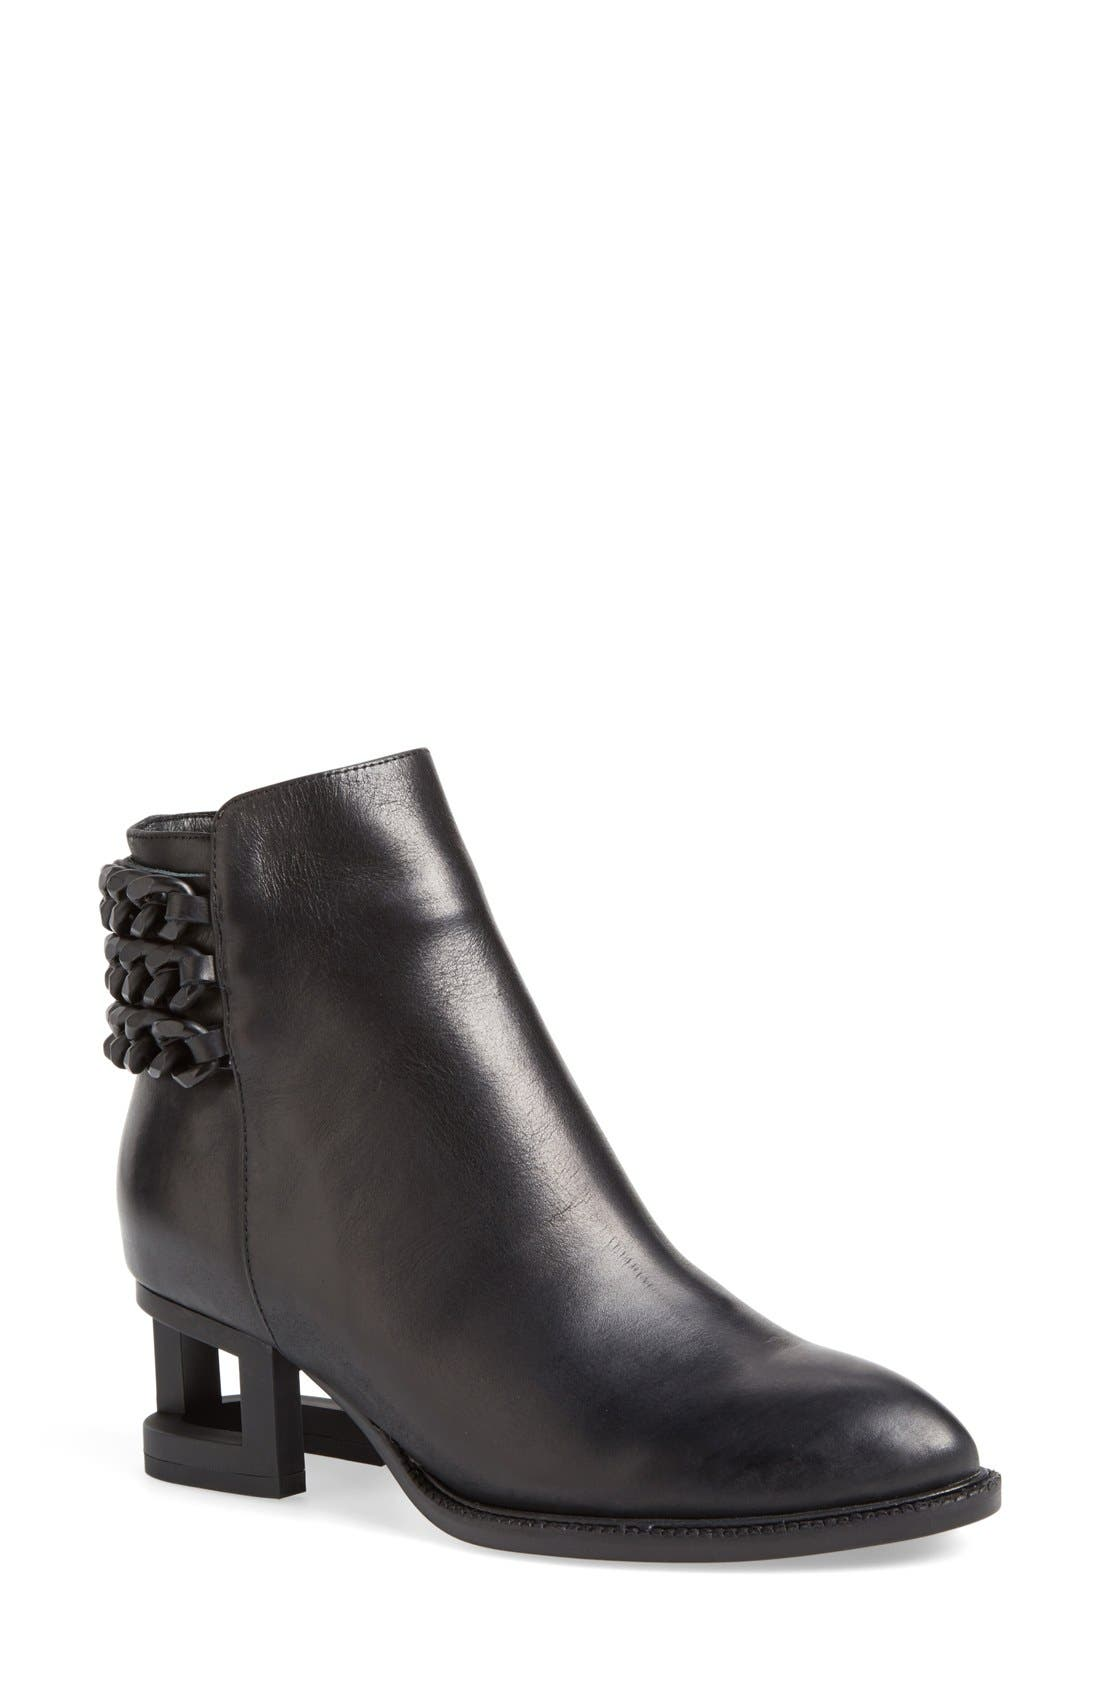 Alternate Image 1 Selected - Jeffrey Campbell 'Benicio' Ankle Boot (Women)